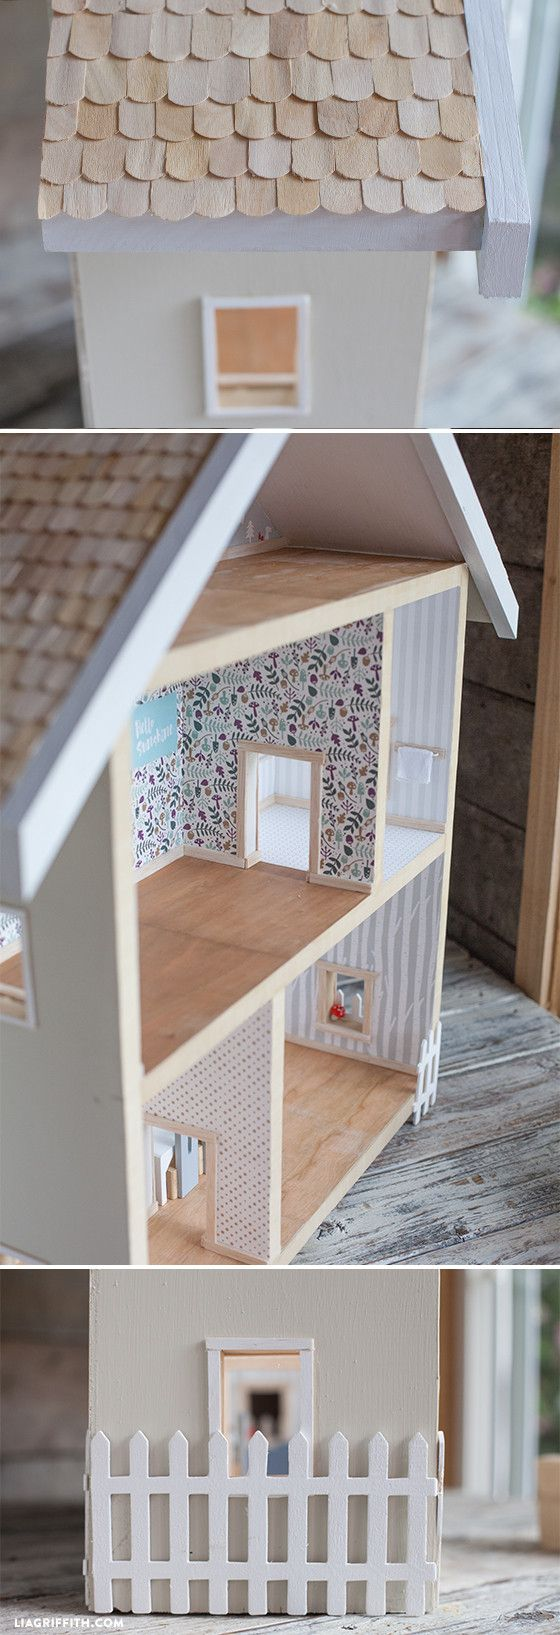 Give a home make your own dollhouse homemade dollhouse for How to make your own dollhouse